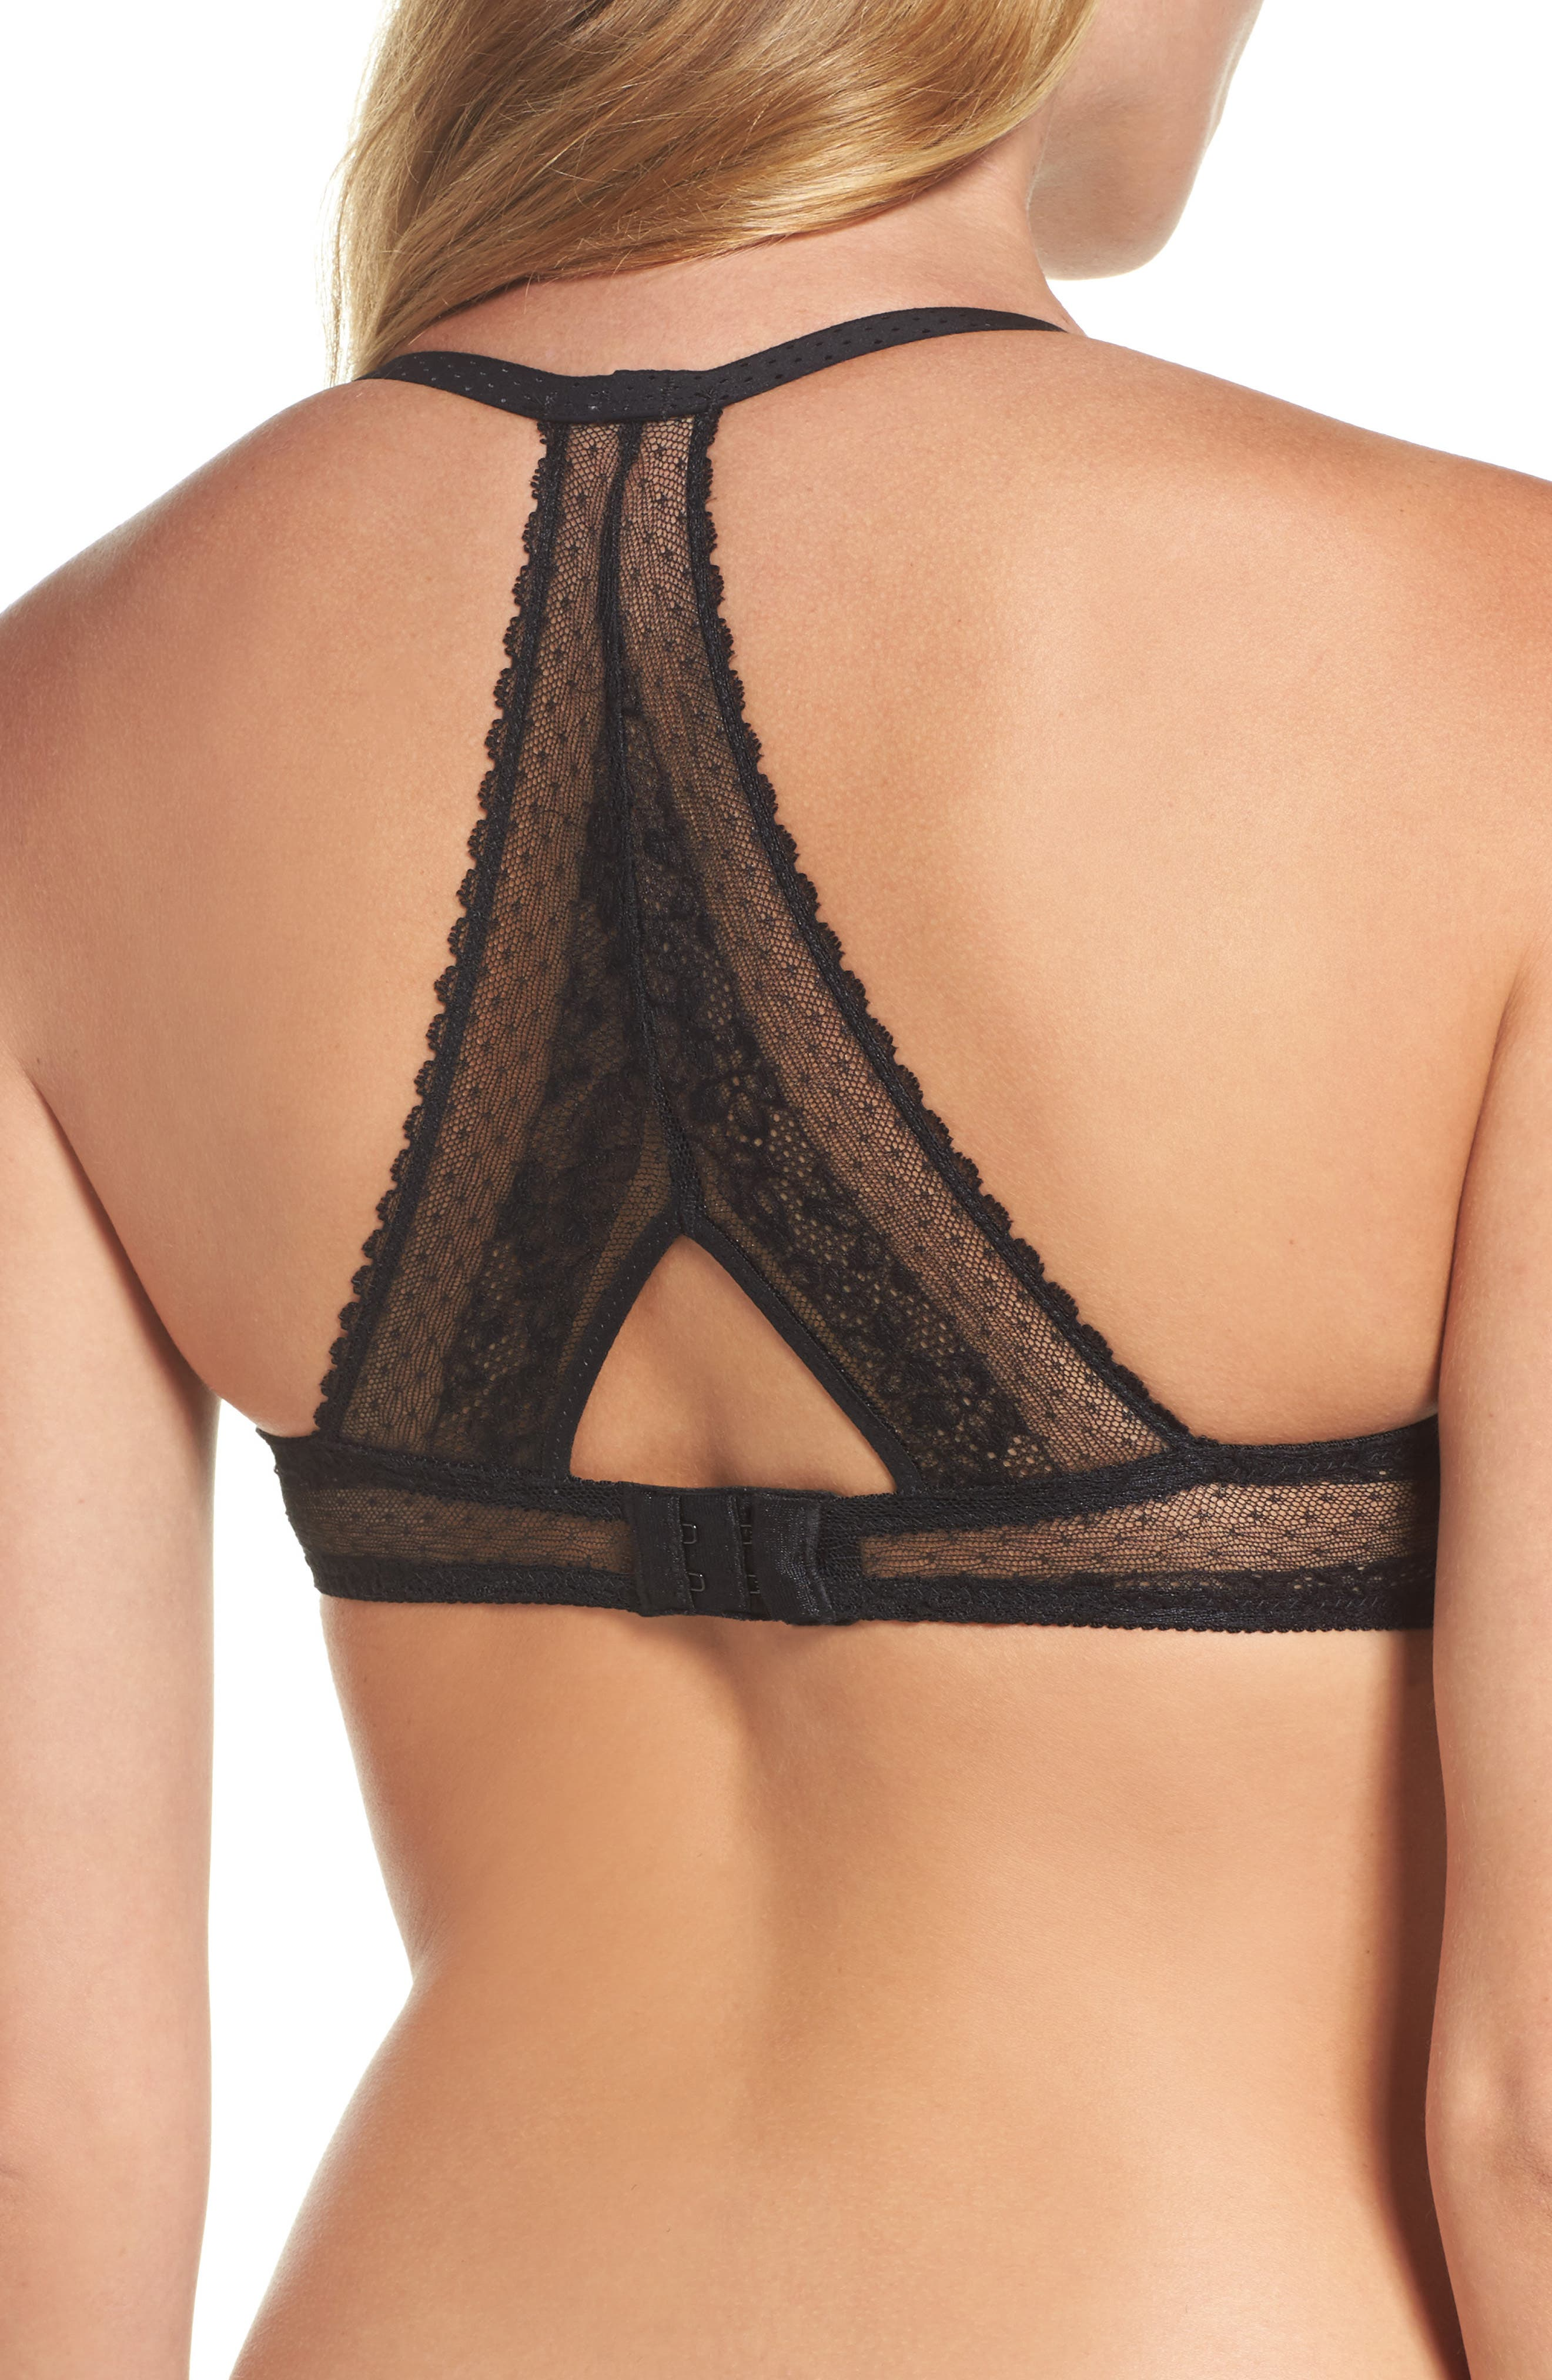 Alternate Image 2  - Passionata by Chantelle Embrasse Moi Underwire Plunge Bra